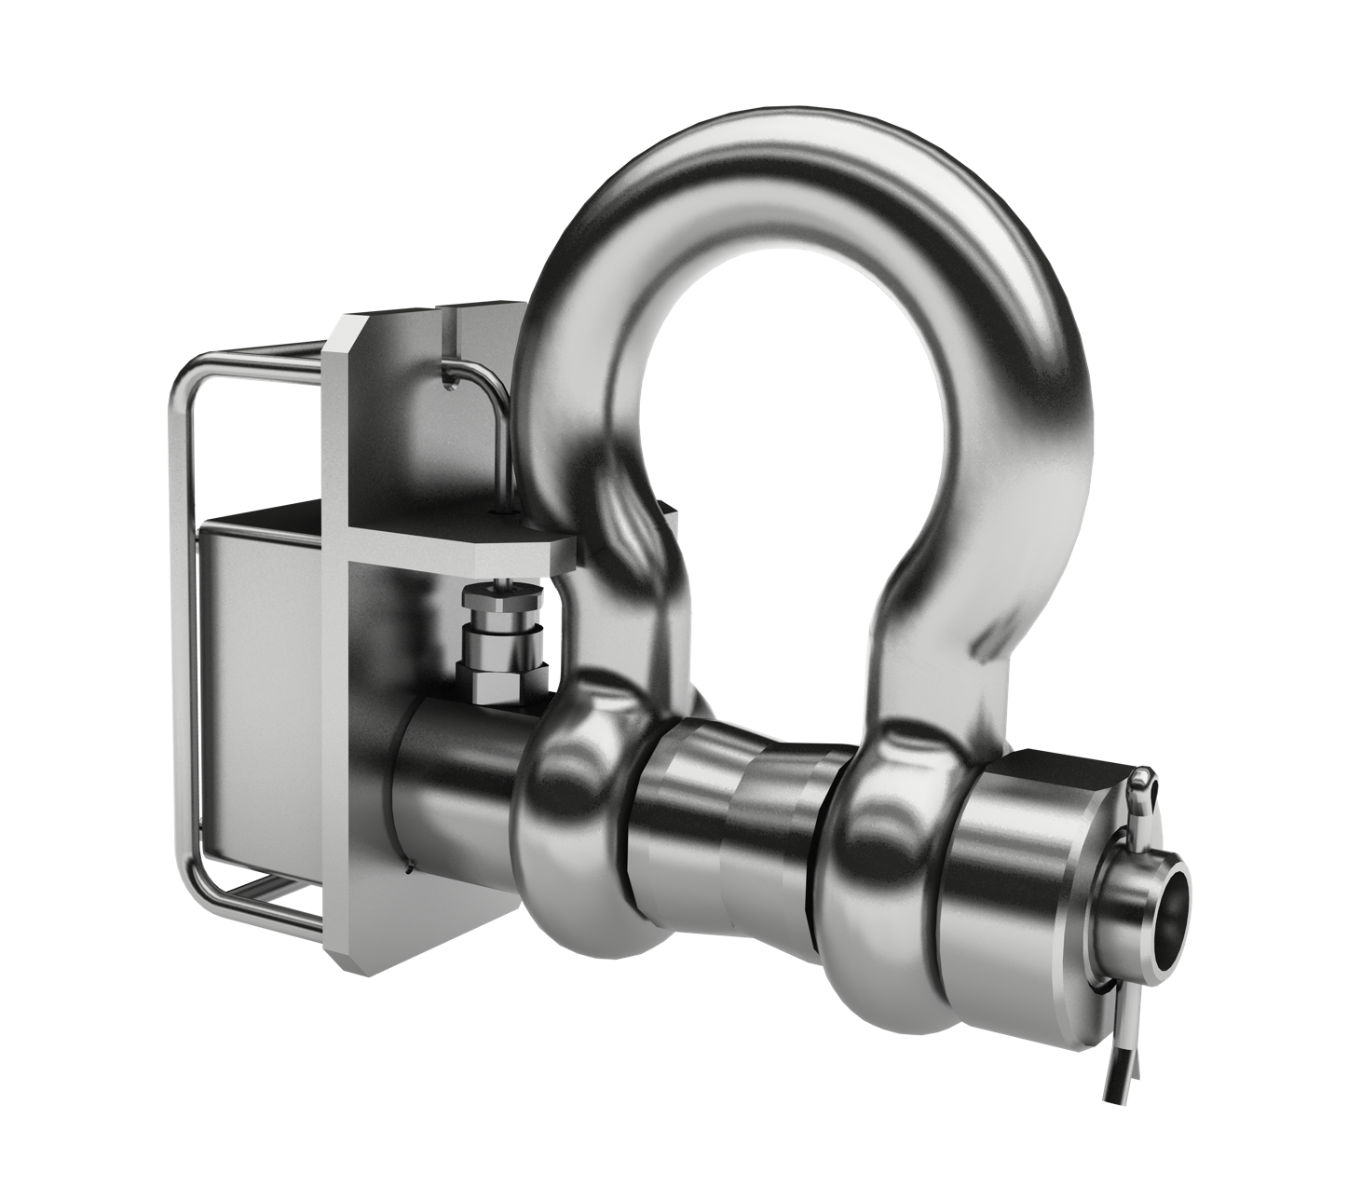 35 tonne load shackle